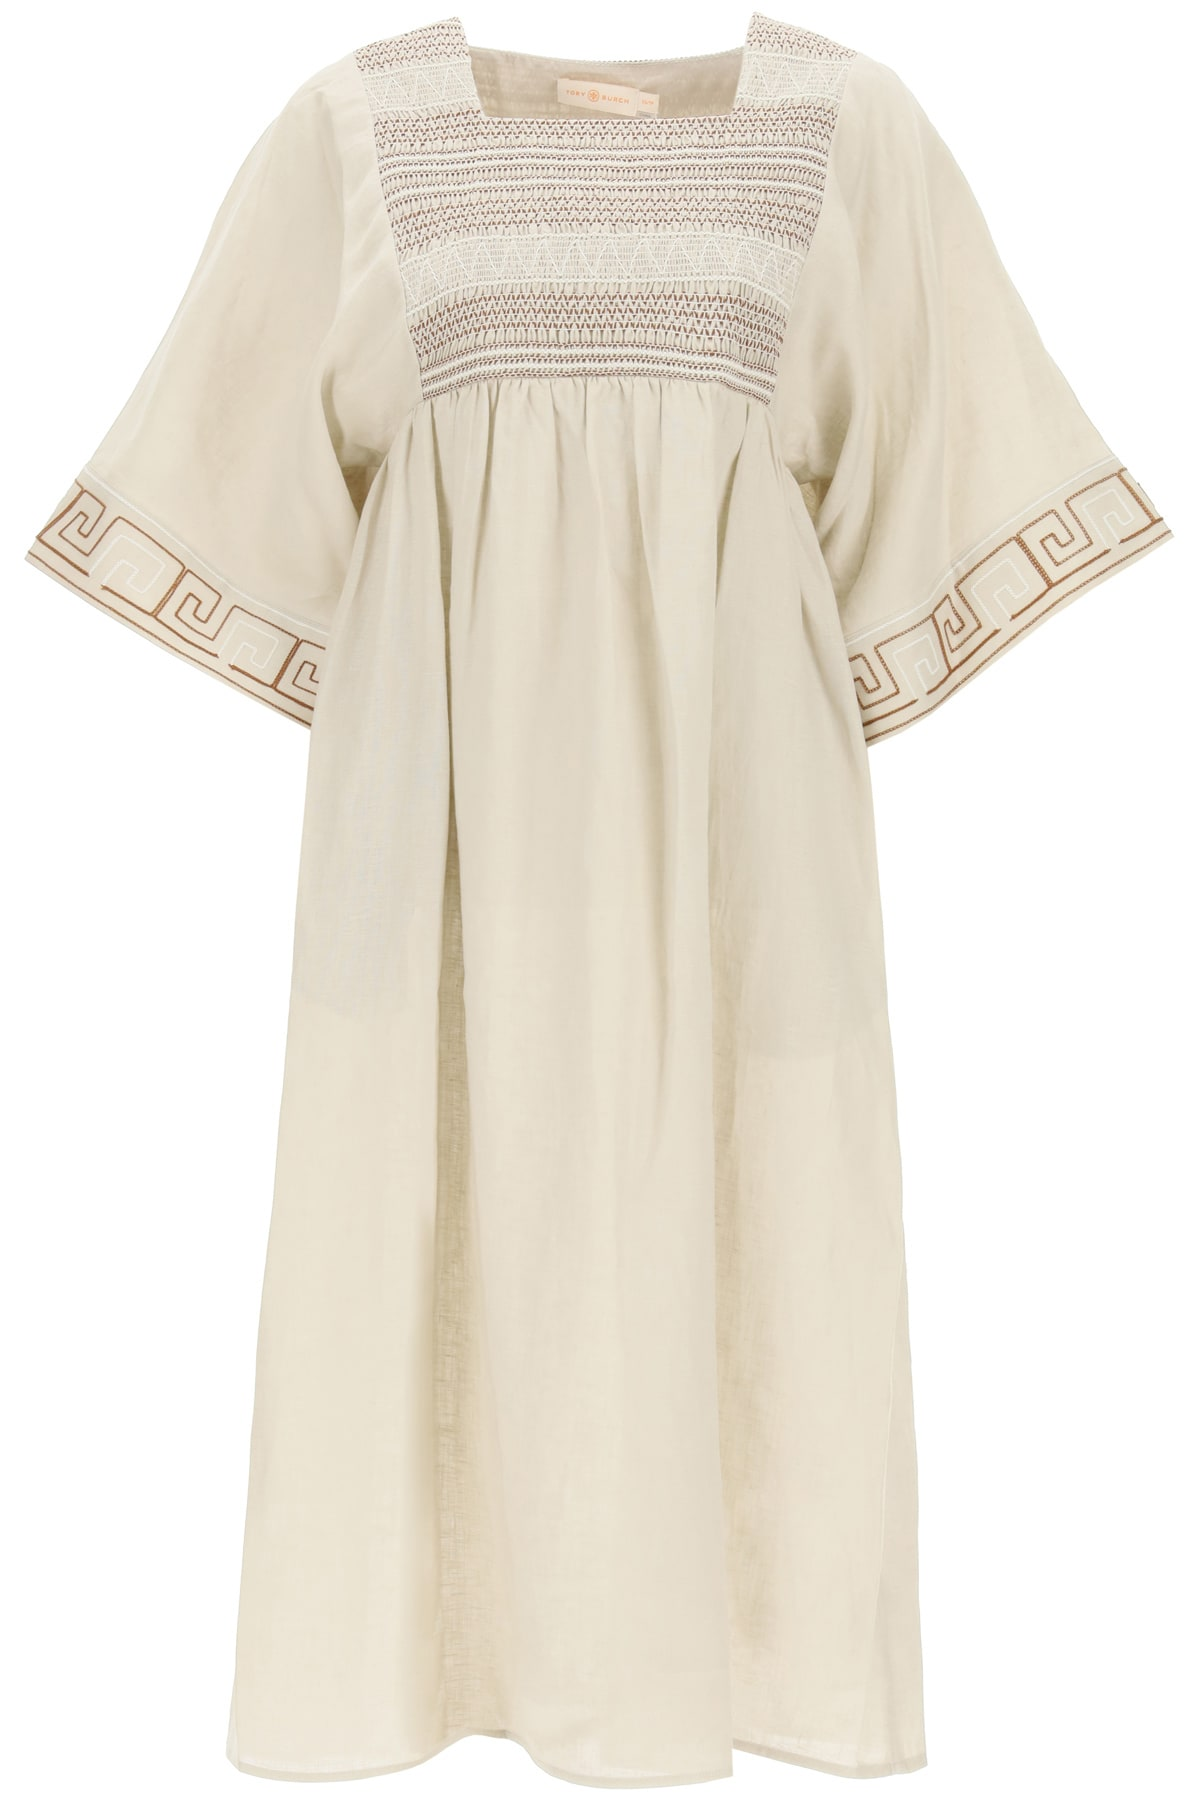 Tory Burch Clothing EMBROIDERED LINEN CAFTAN DRESS